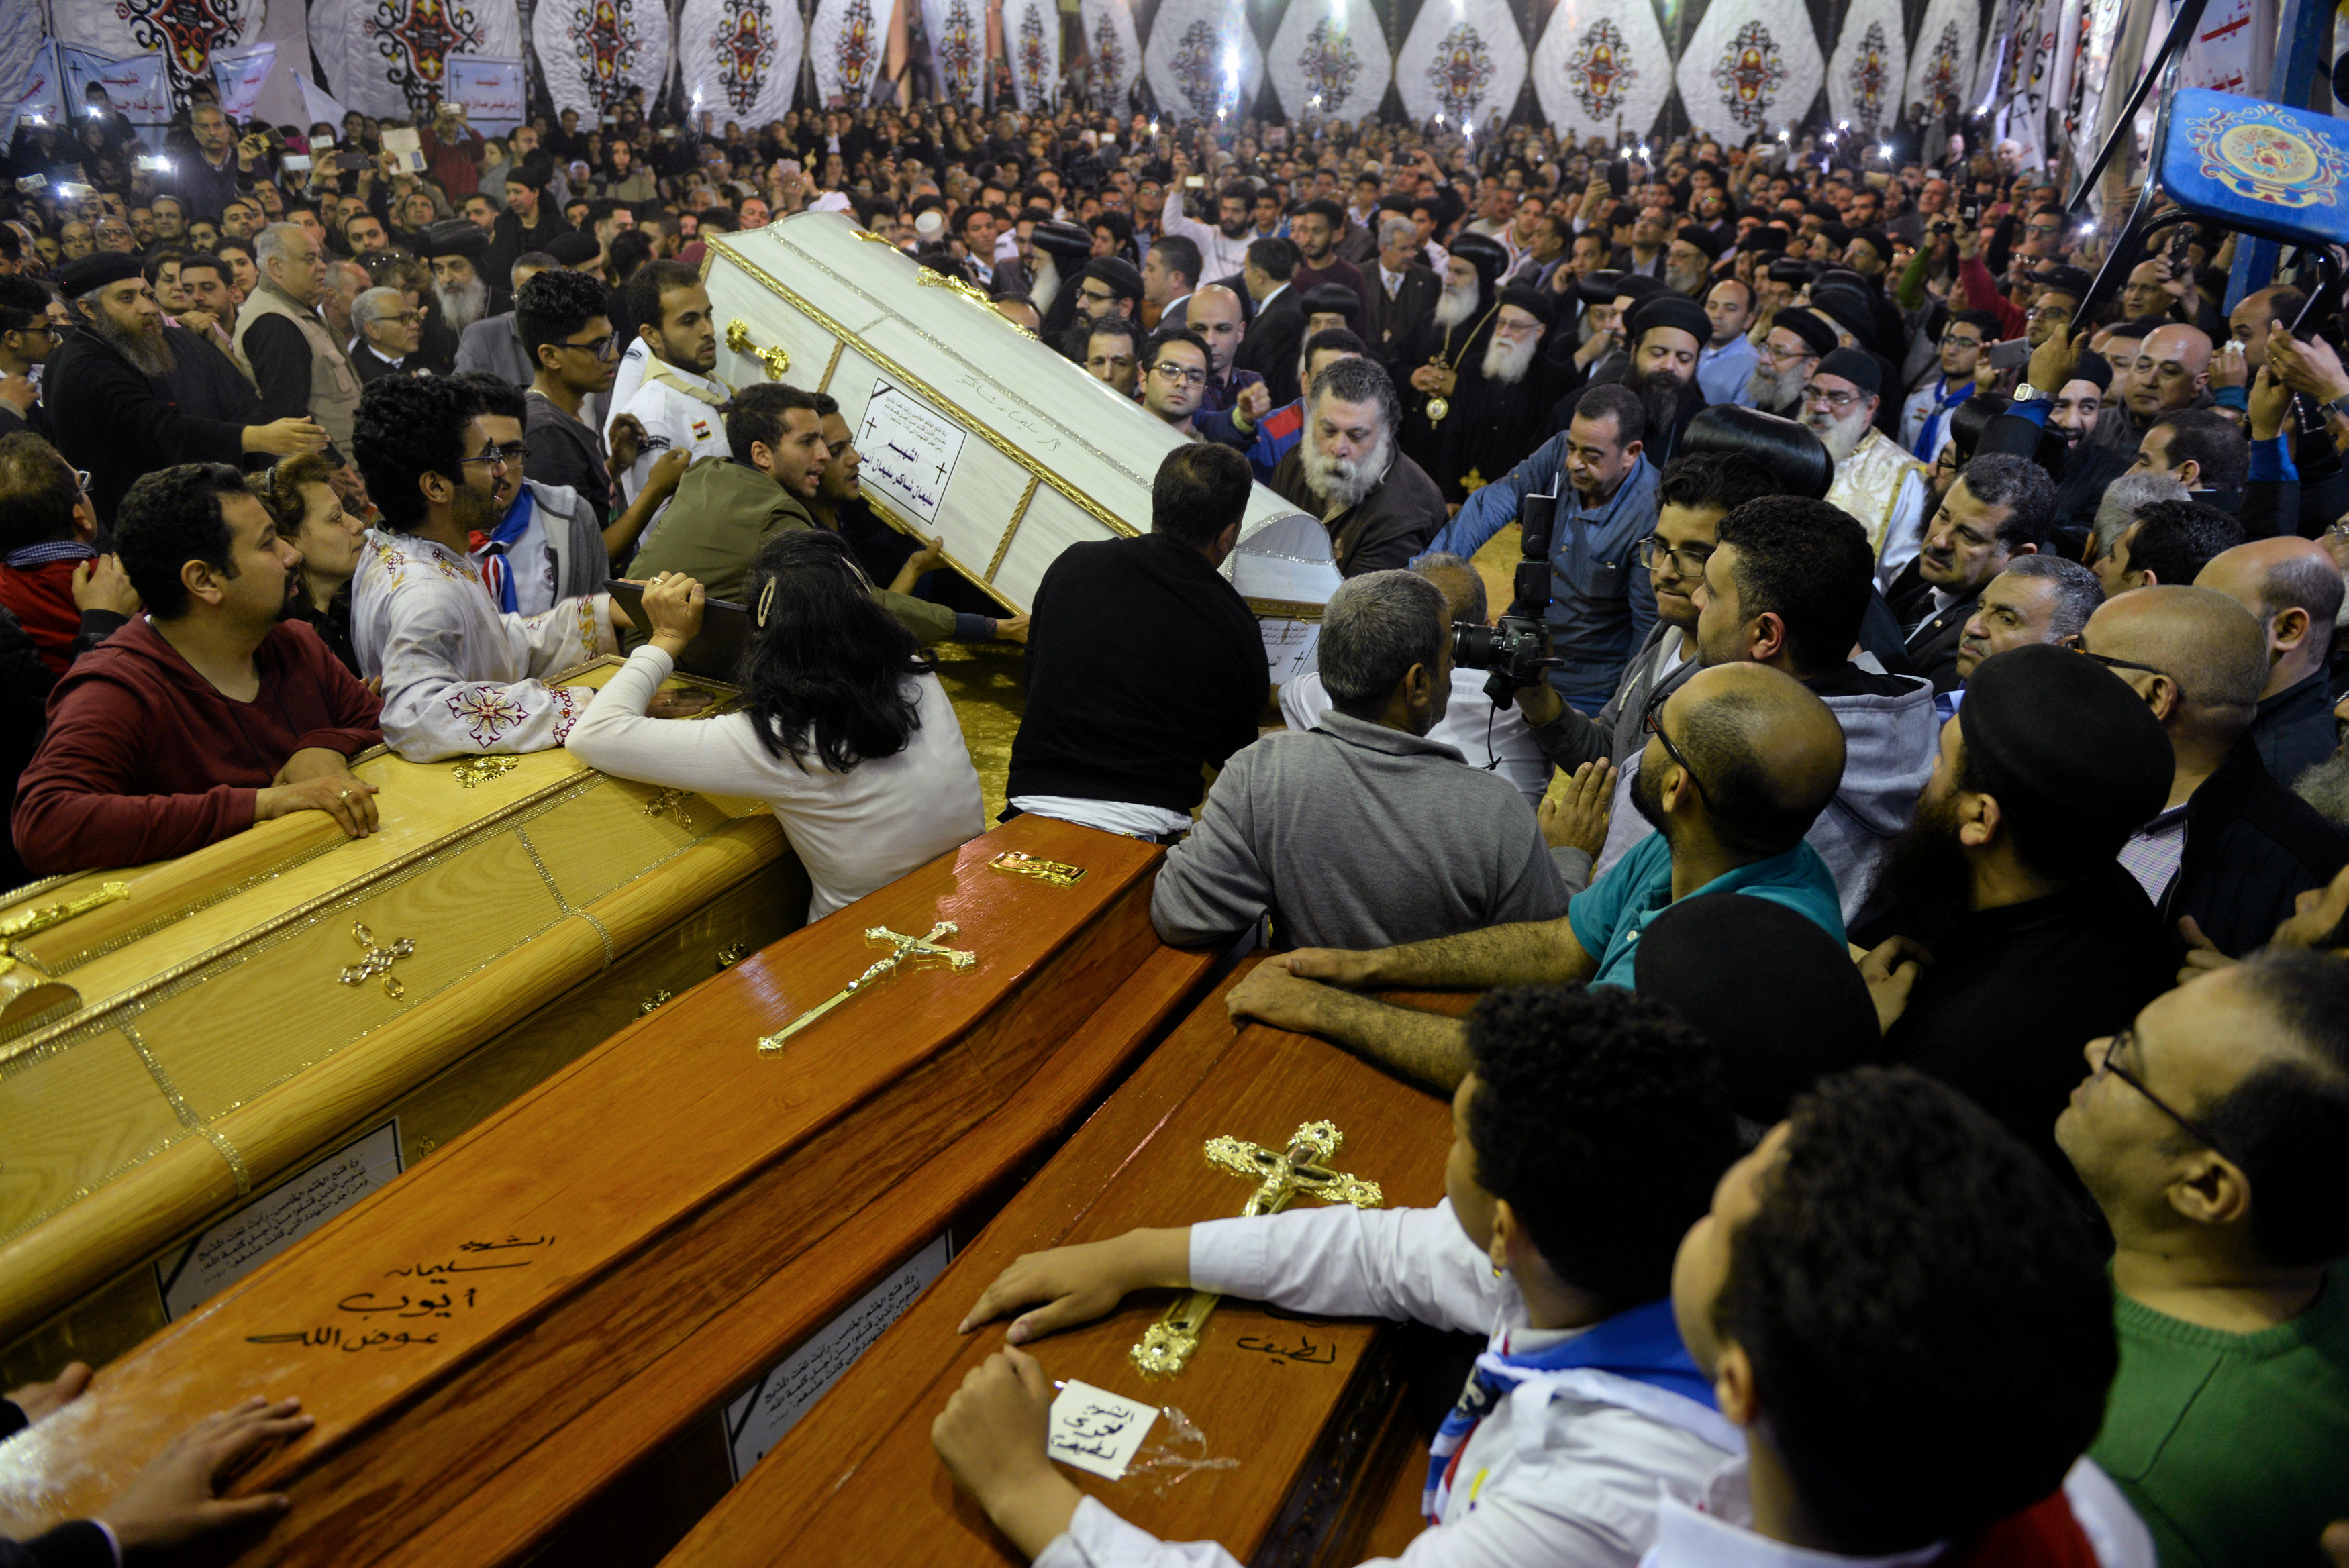 People watch as the coffins of victims arrive to the Coptic church that was bombed on Sunday, in Tanta, Egypt,